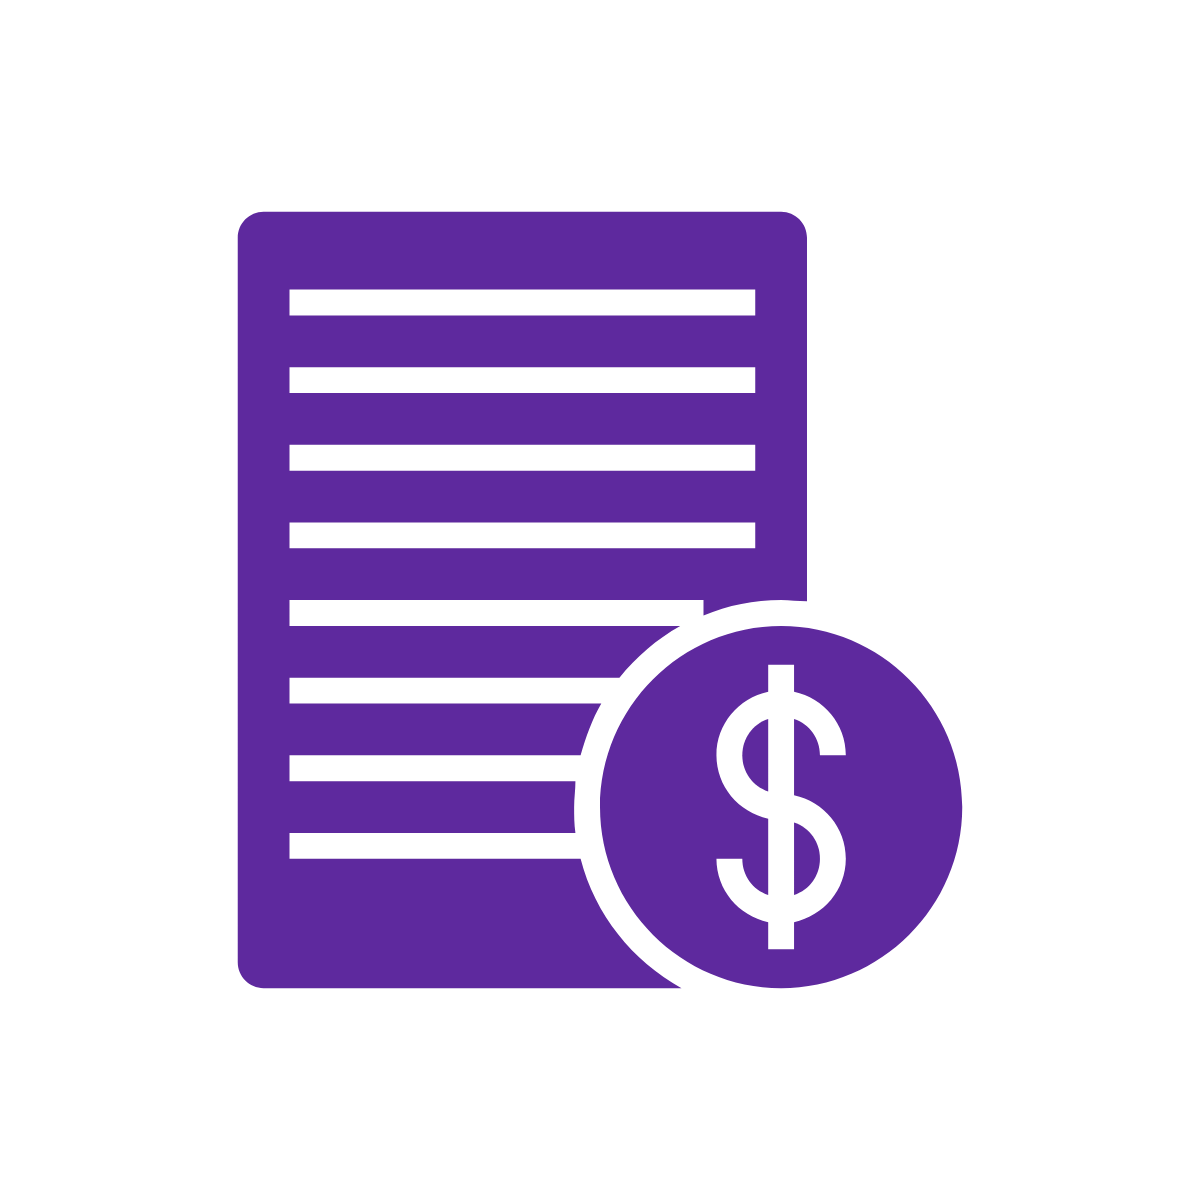 Icon of document with dollar sign